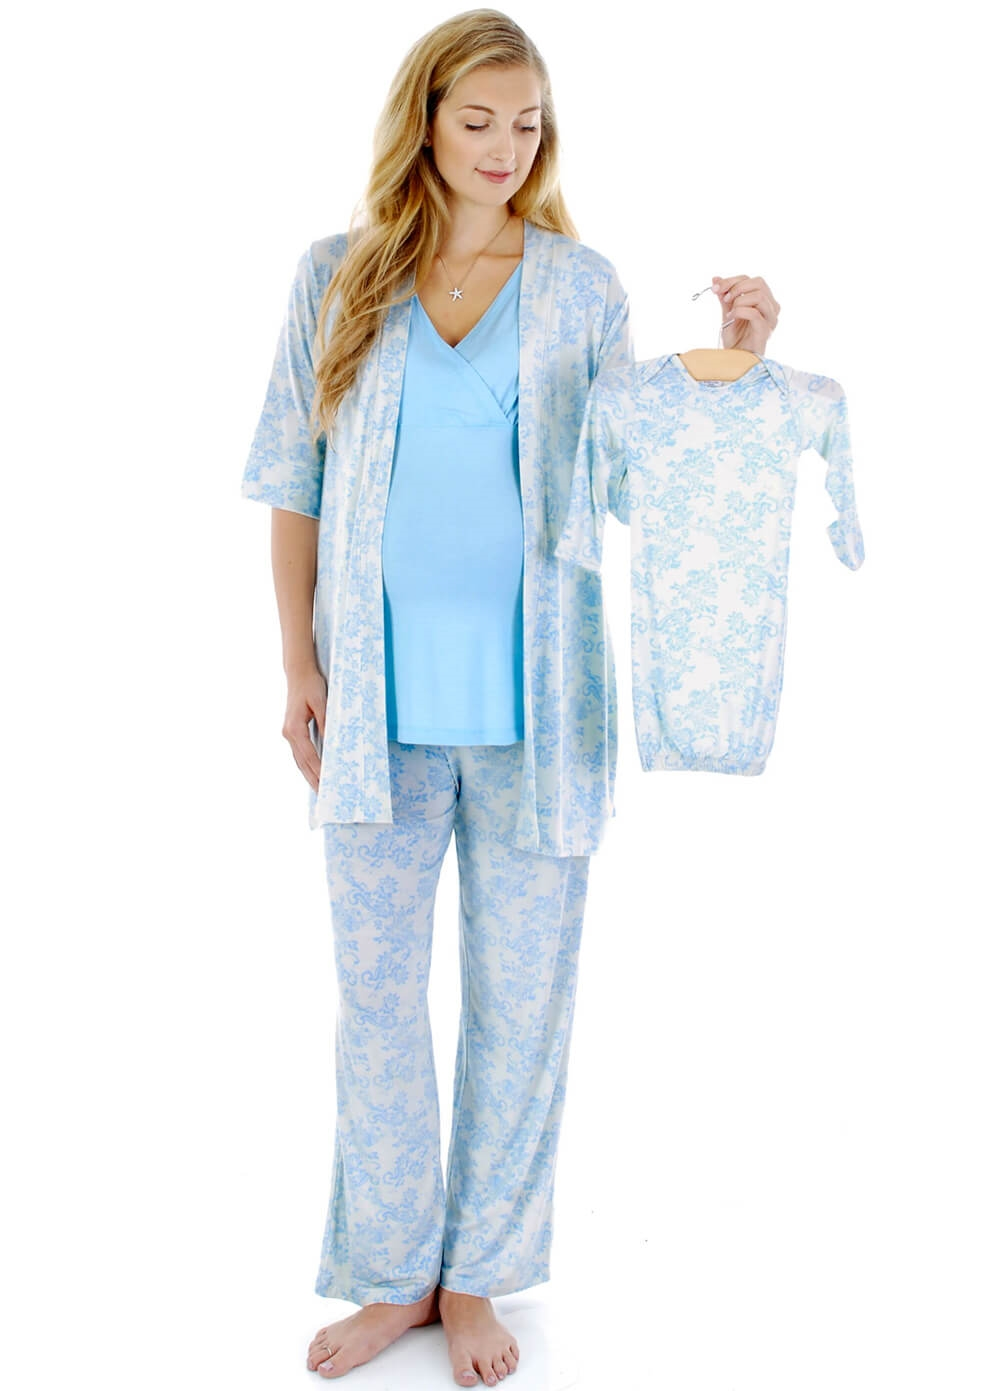 Roxanne Mommy & Me PJ Gift Set in Blue Chantilly by Everly Grey